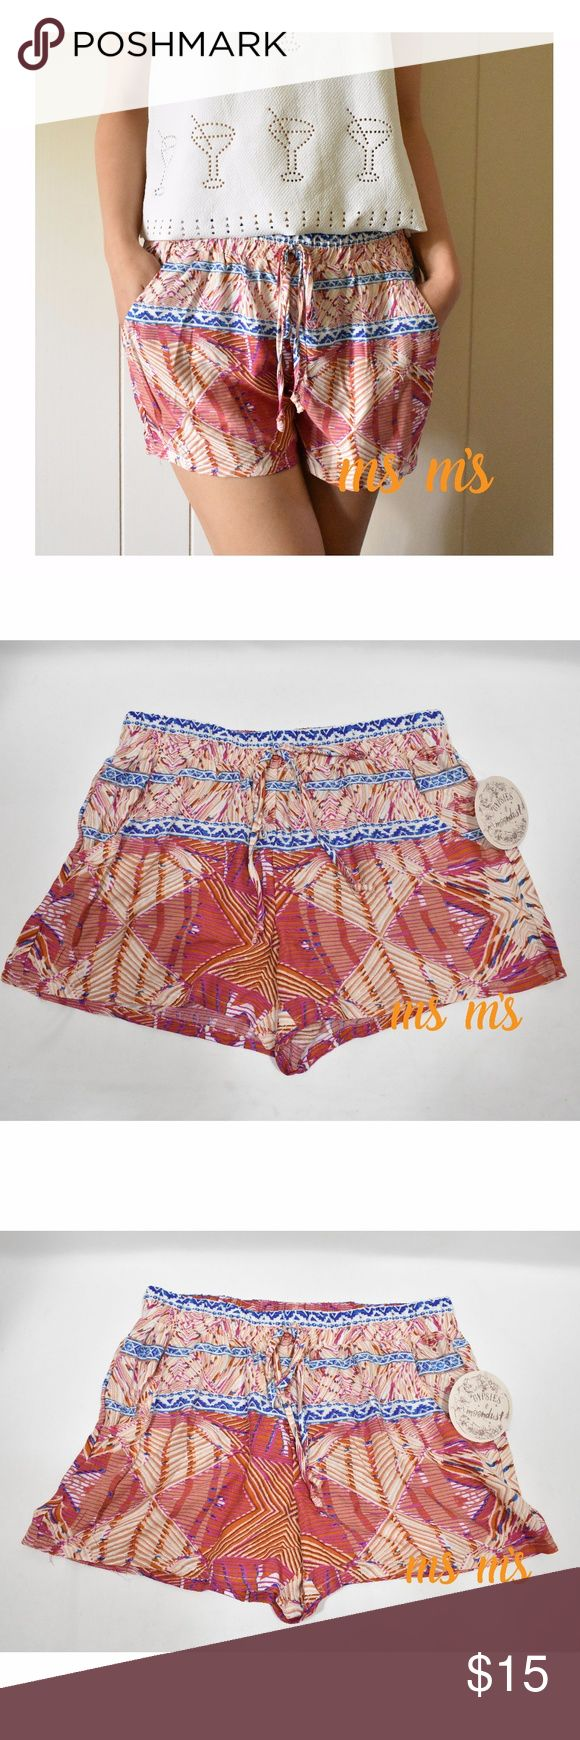 Firm Price NWT GYPSIES & MOONDUST Short Price is Firm New with tag Gypsies & Moondust Shorts